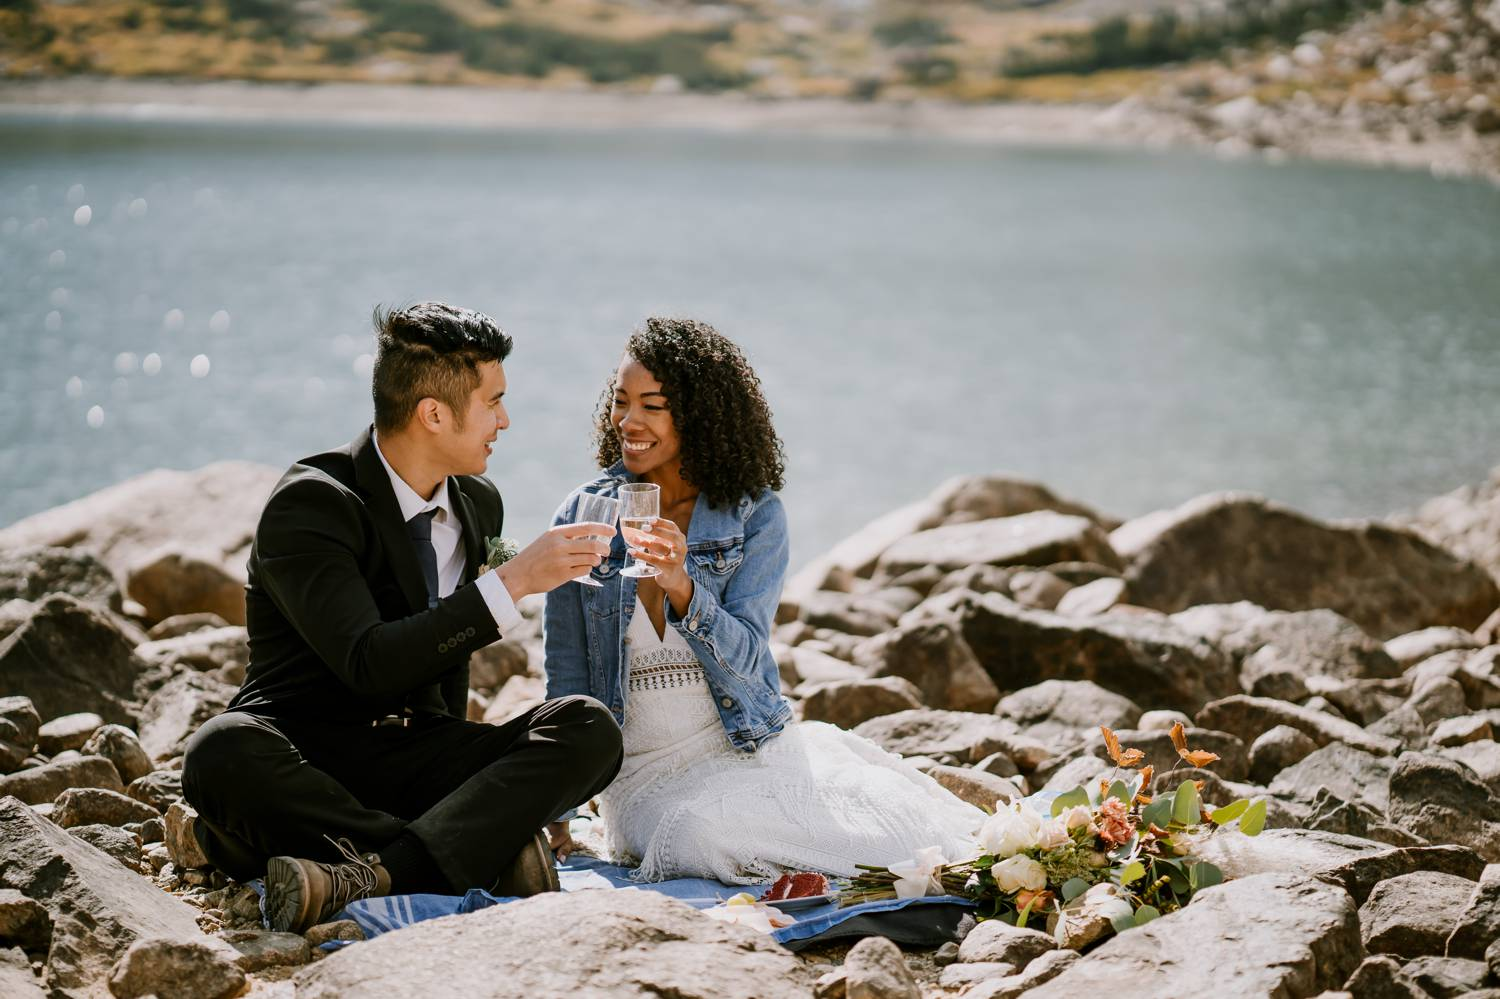 Customer Loyalty: By Nick Sparks, a bride and groom sip wine beside a sparkling lake.